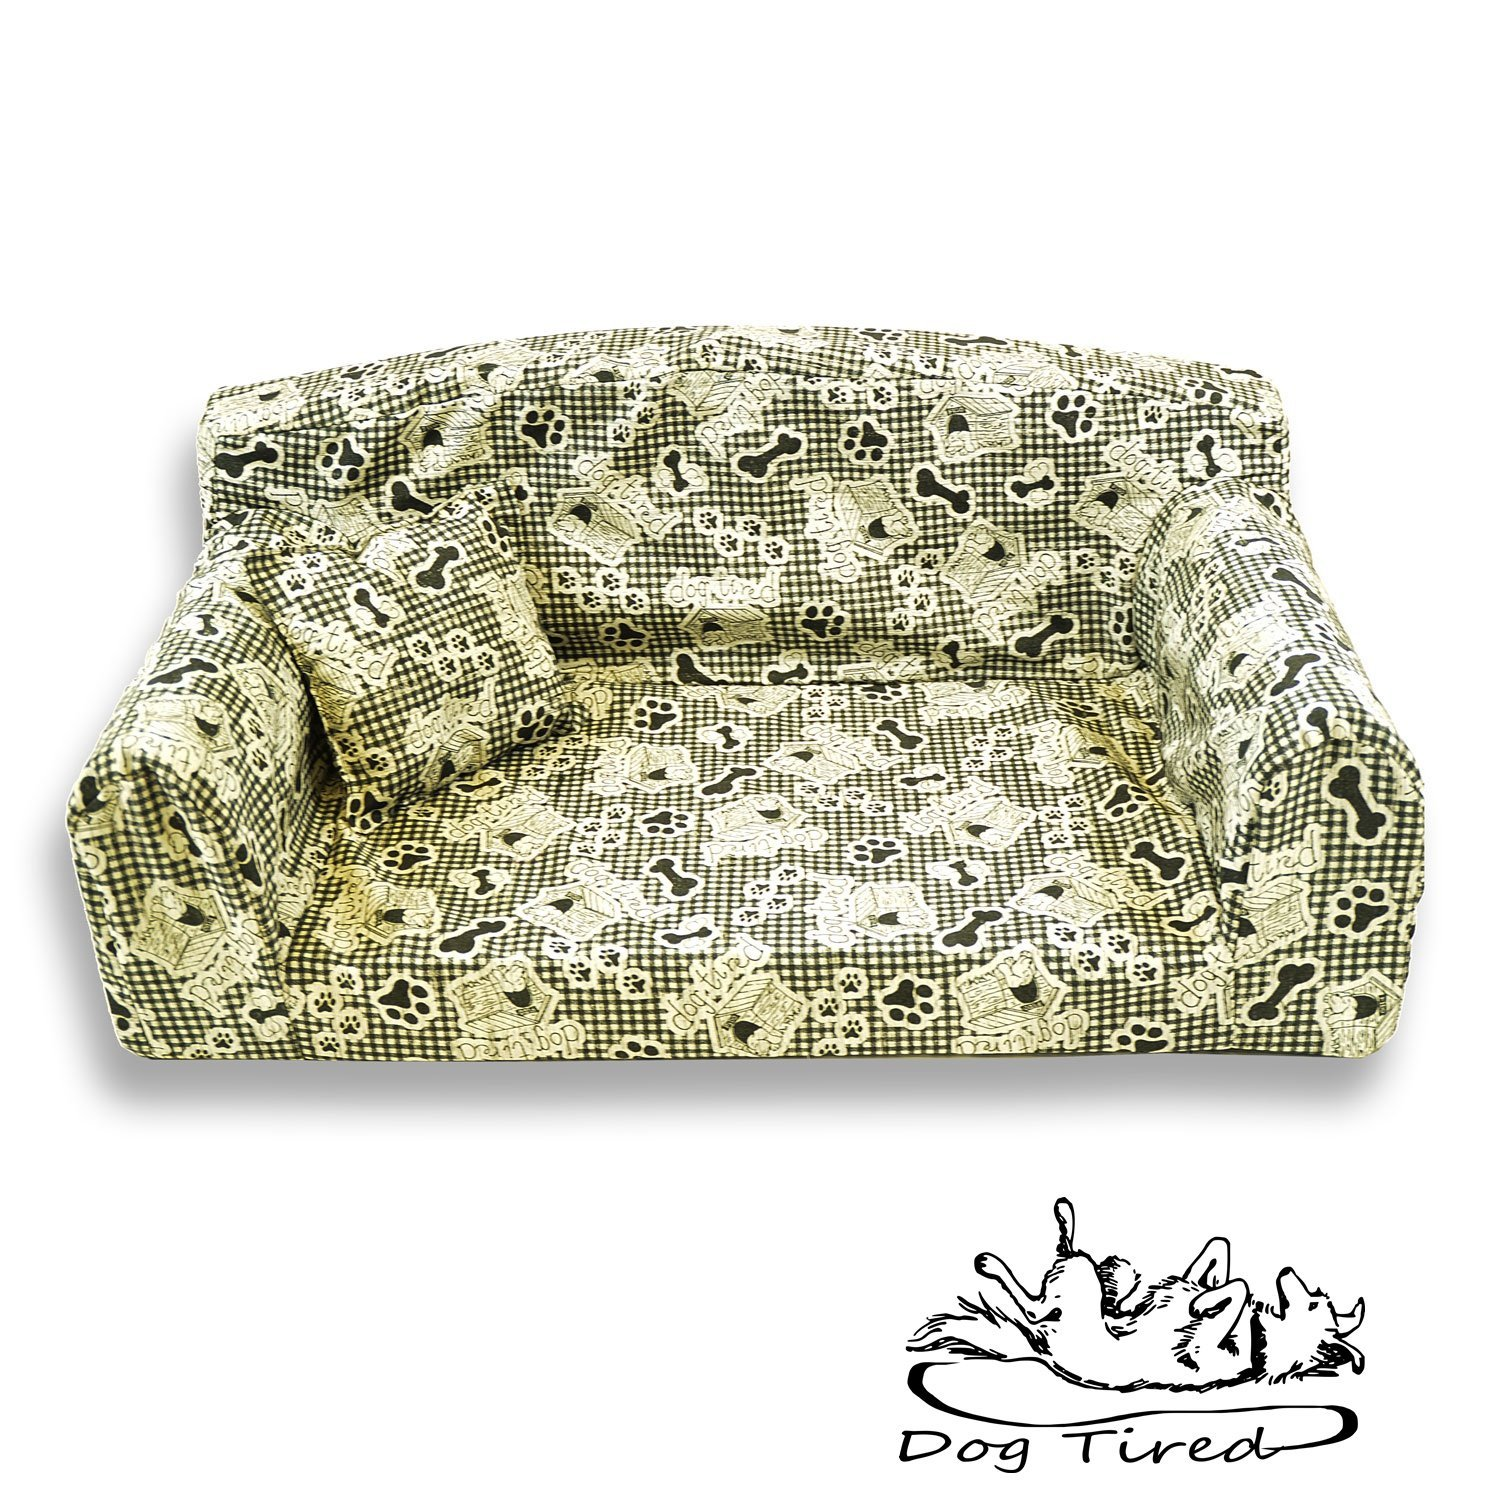 Dog Tired White – Pet Sofa. Trendy 3 sizes Dog bed. Modern cover material. Made in UK (Large 96 x 64 x 34 cm) Pet Beds Direct